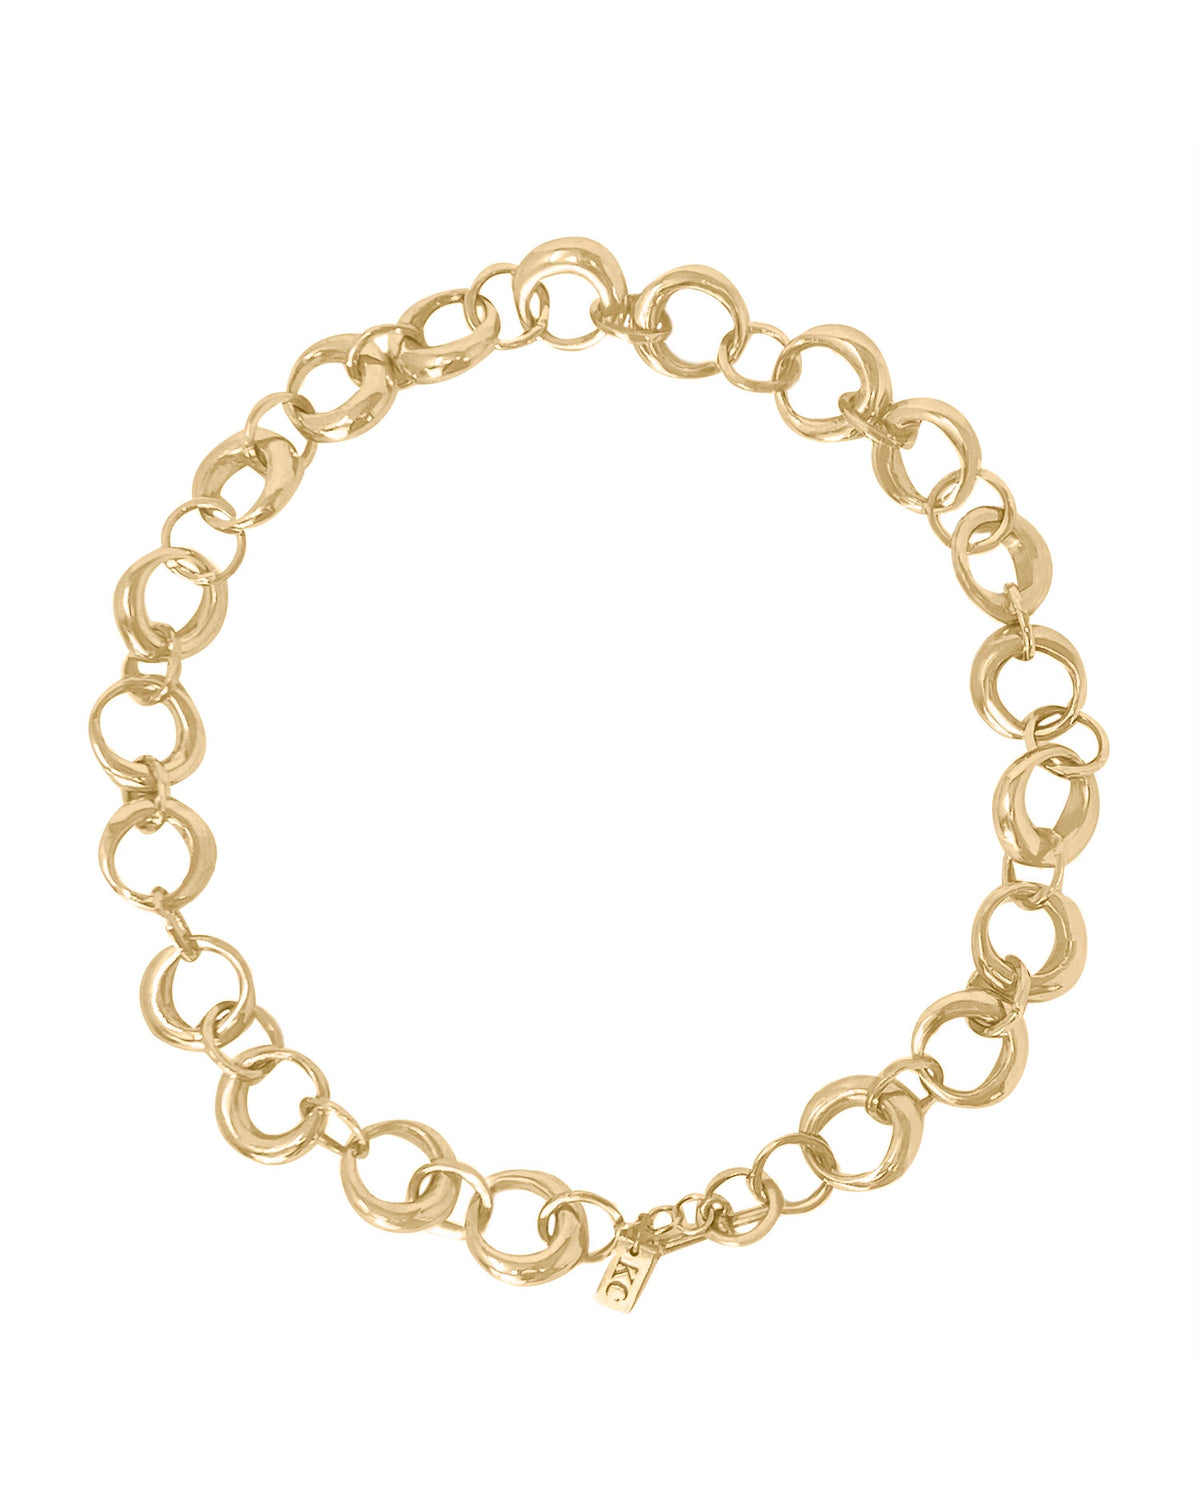 ROUNDED RING COLLAR NECKLACE